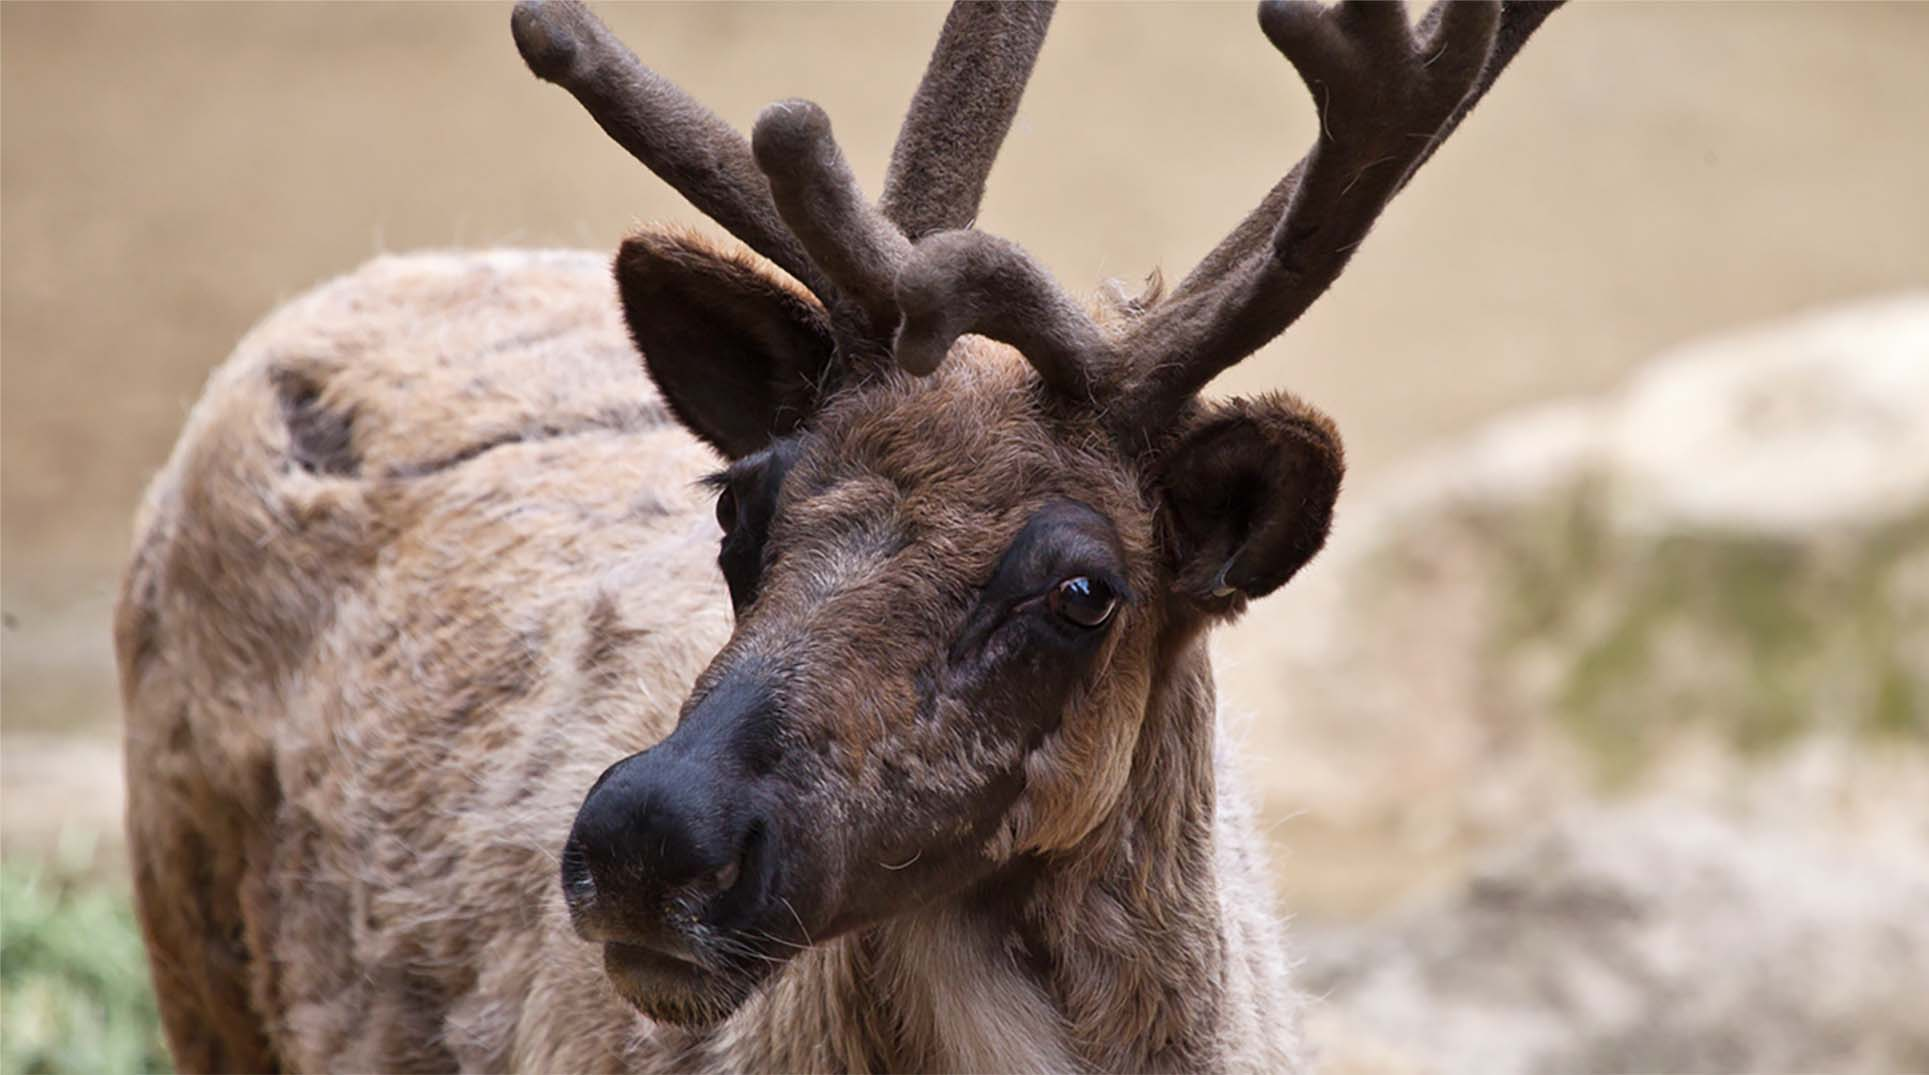 A reindeer displaying its antlers.